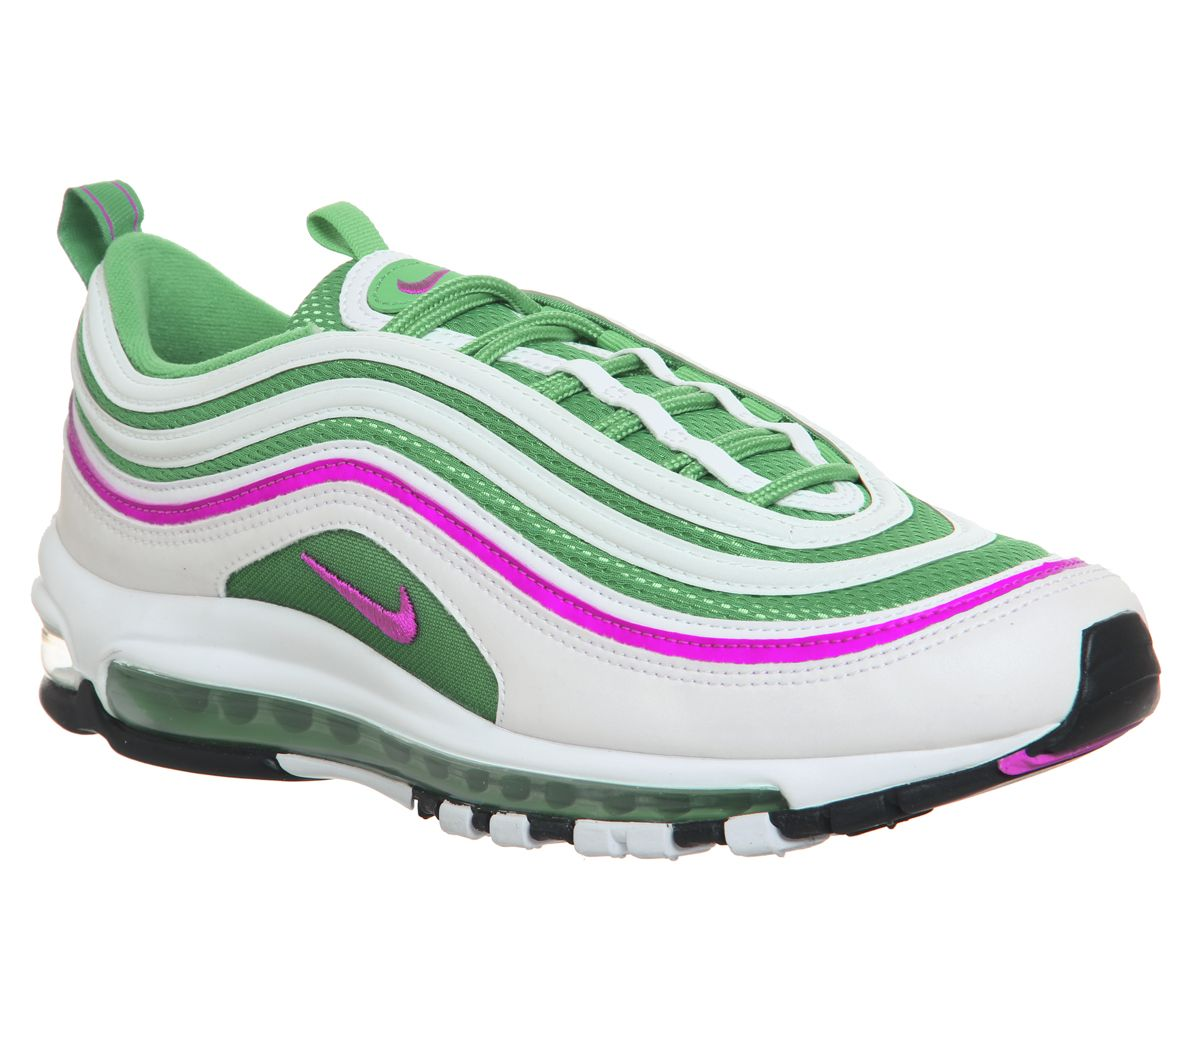 best website 0372c 36928 Air Max 97 Trainers